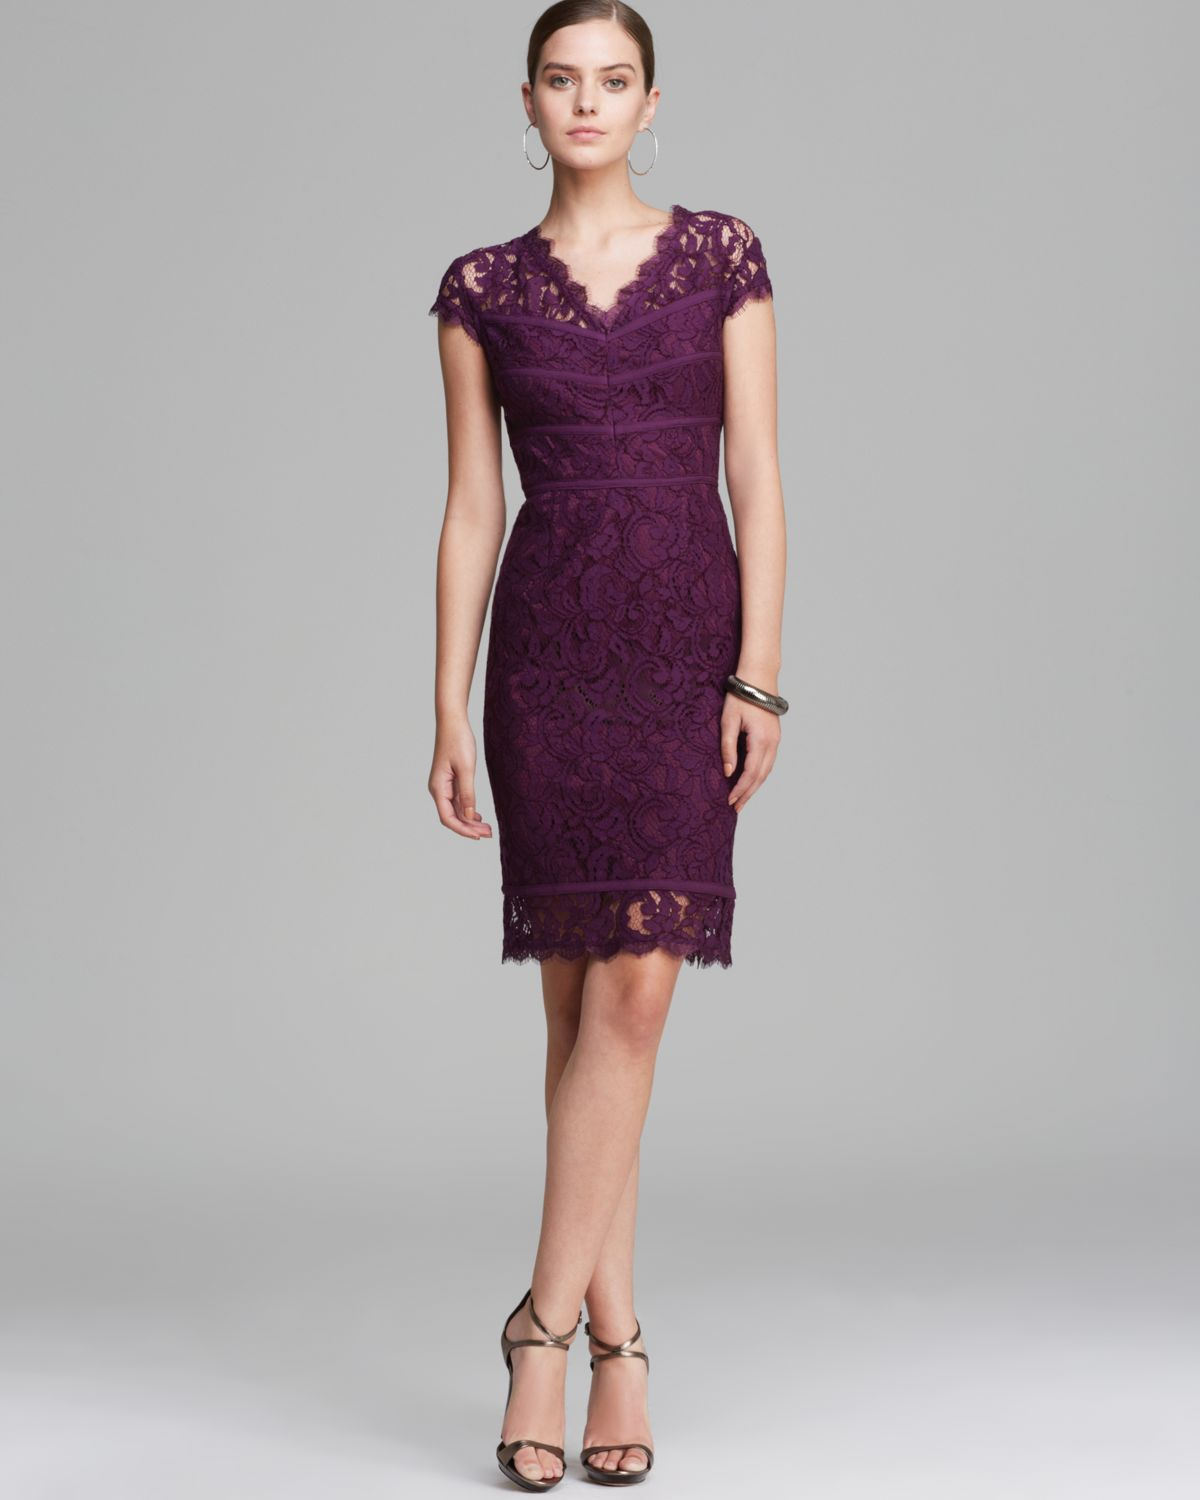 Lyst  Adrianna Papell Dress Cap Sleeve Lace in Purple